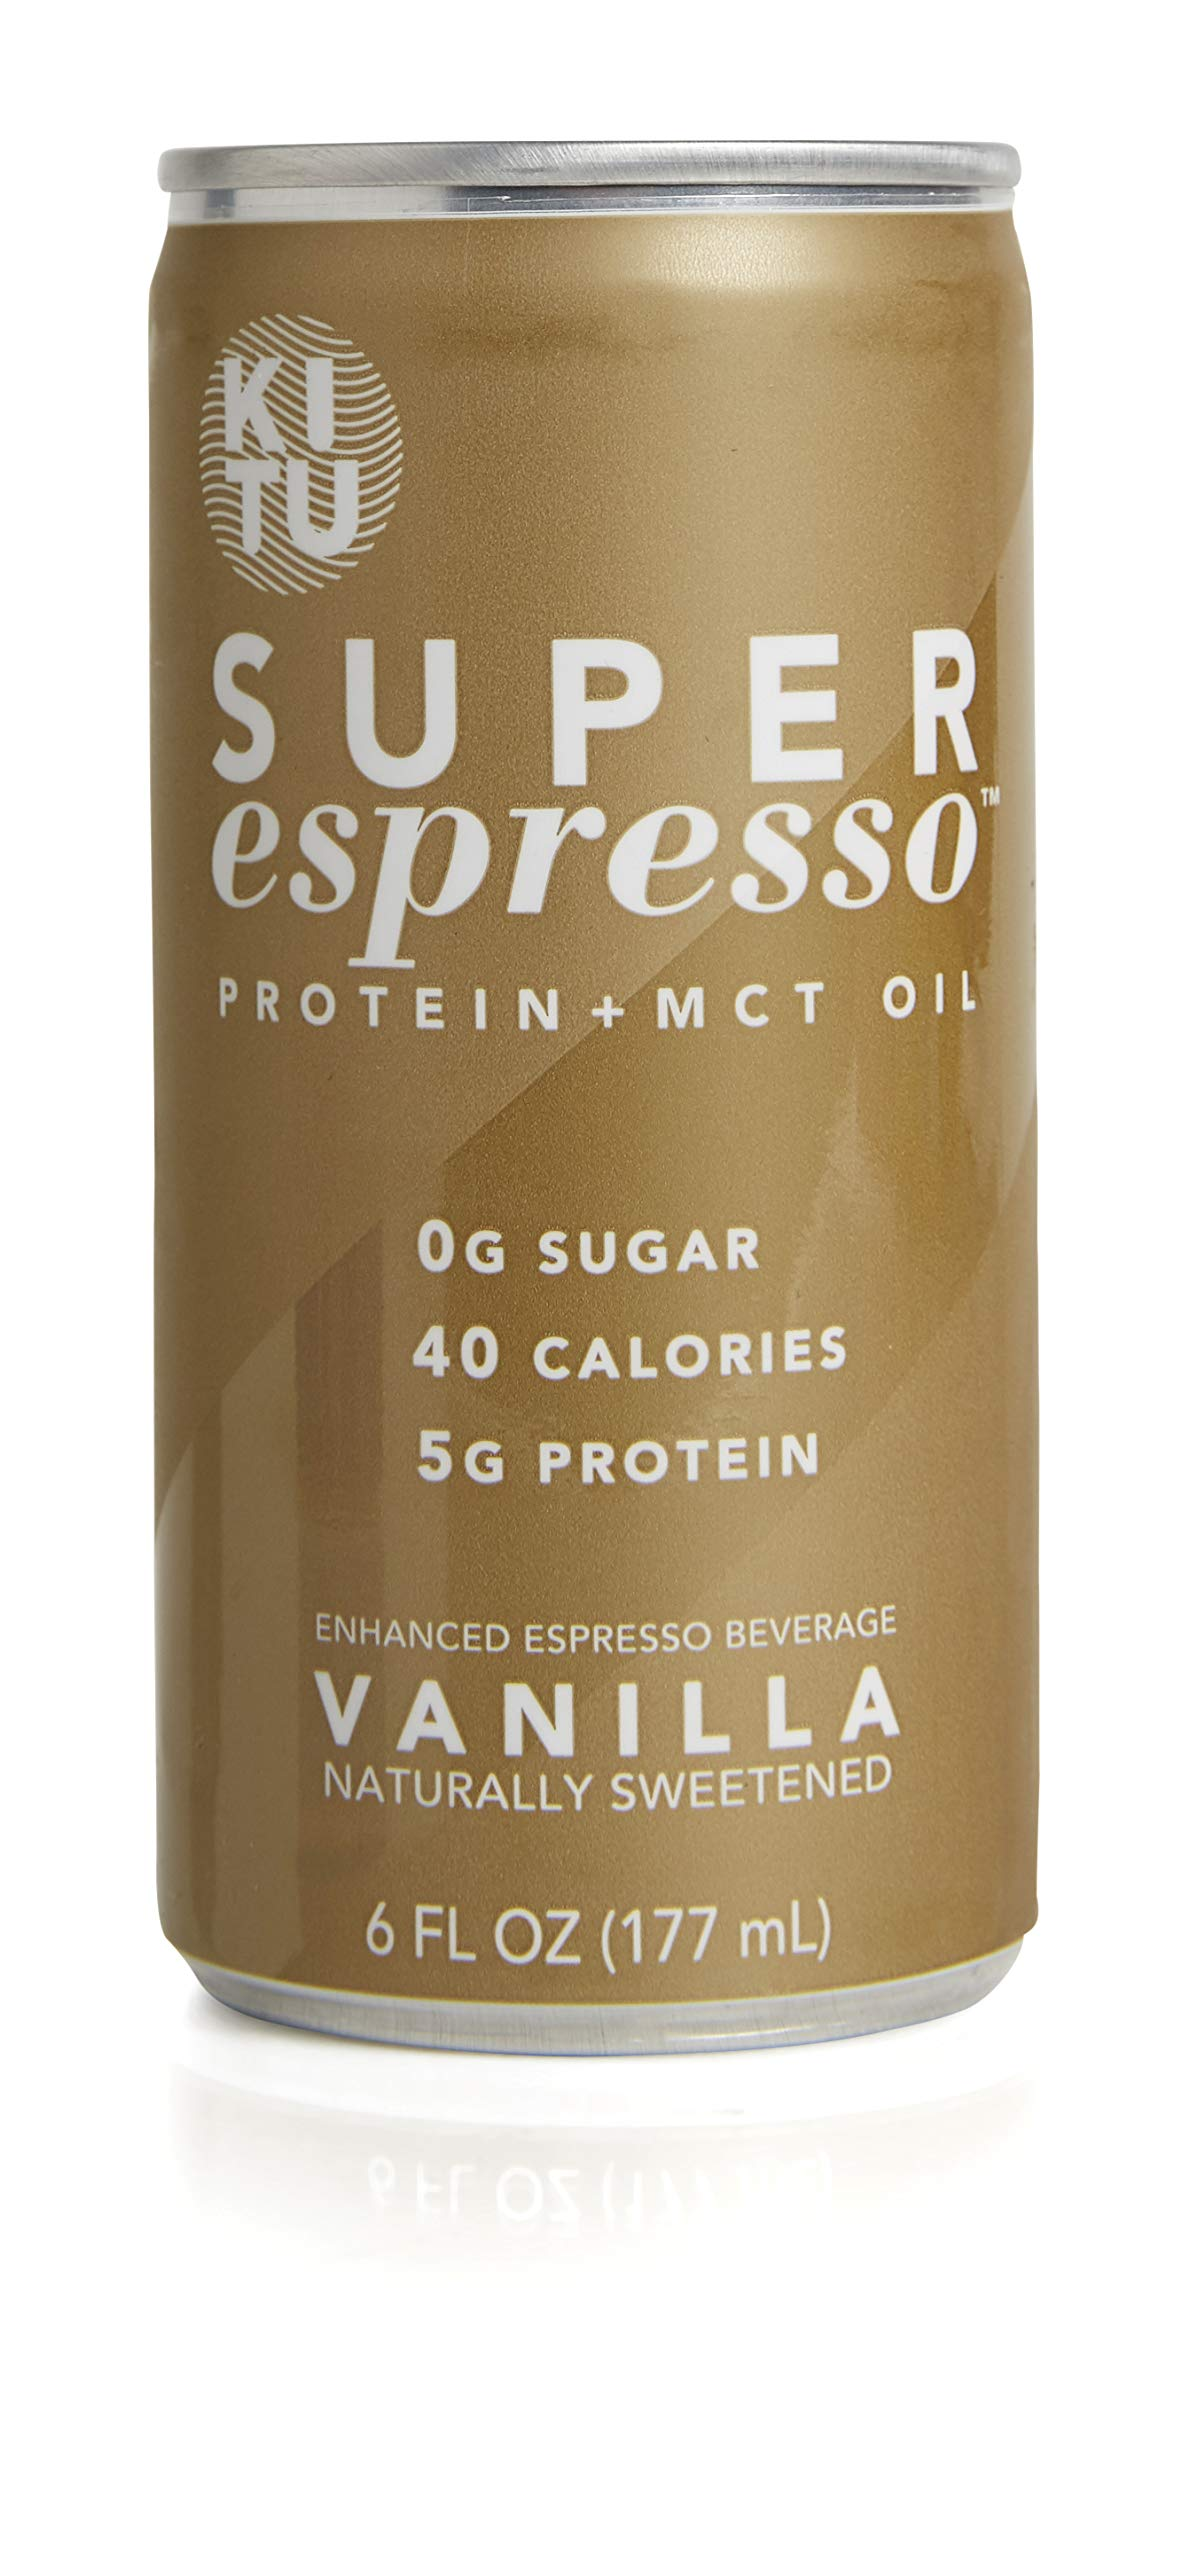 Kitu by SUNNIVA Vanilla Super Espresso with Protein and MCT Oil, Keto Approved, 0g Sugar, 5g Protein, 40 Calories, 6 fl. oz, Pack of 24